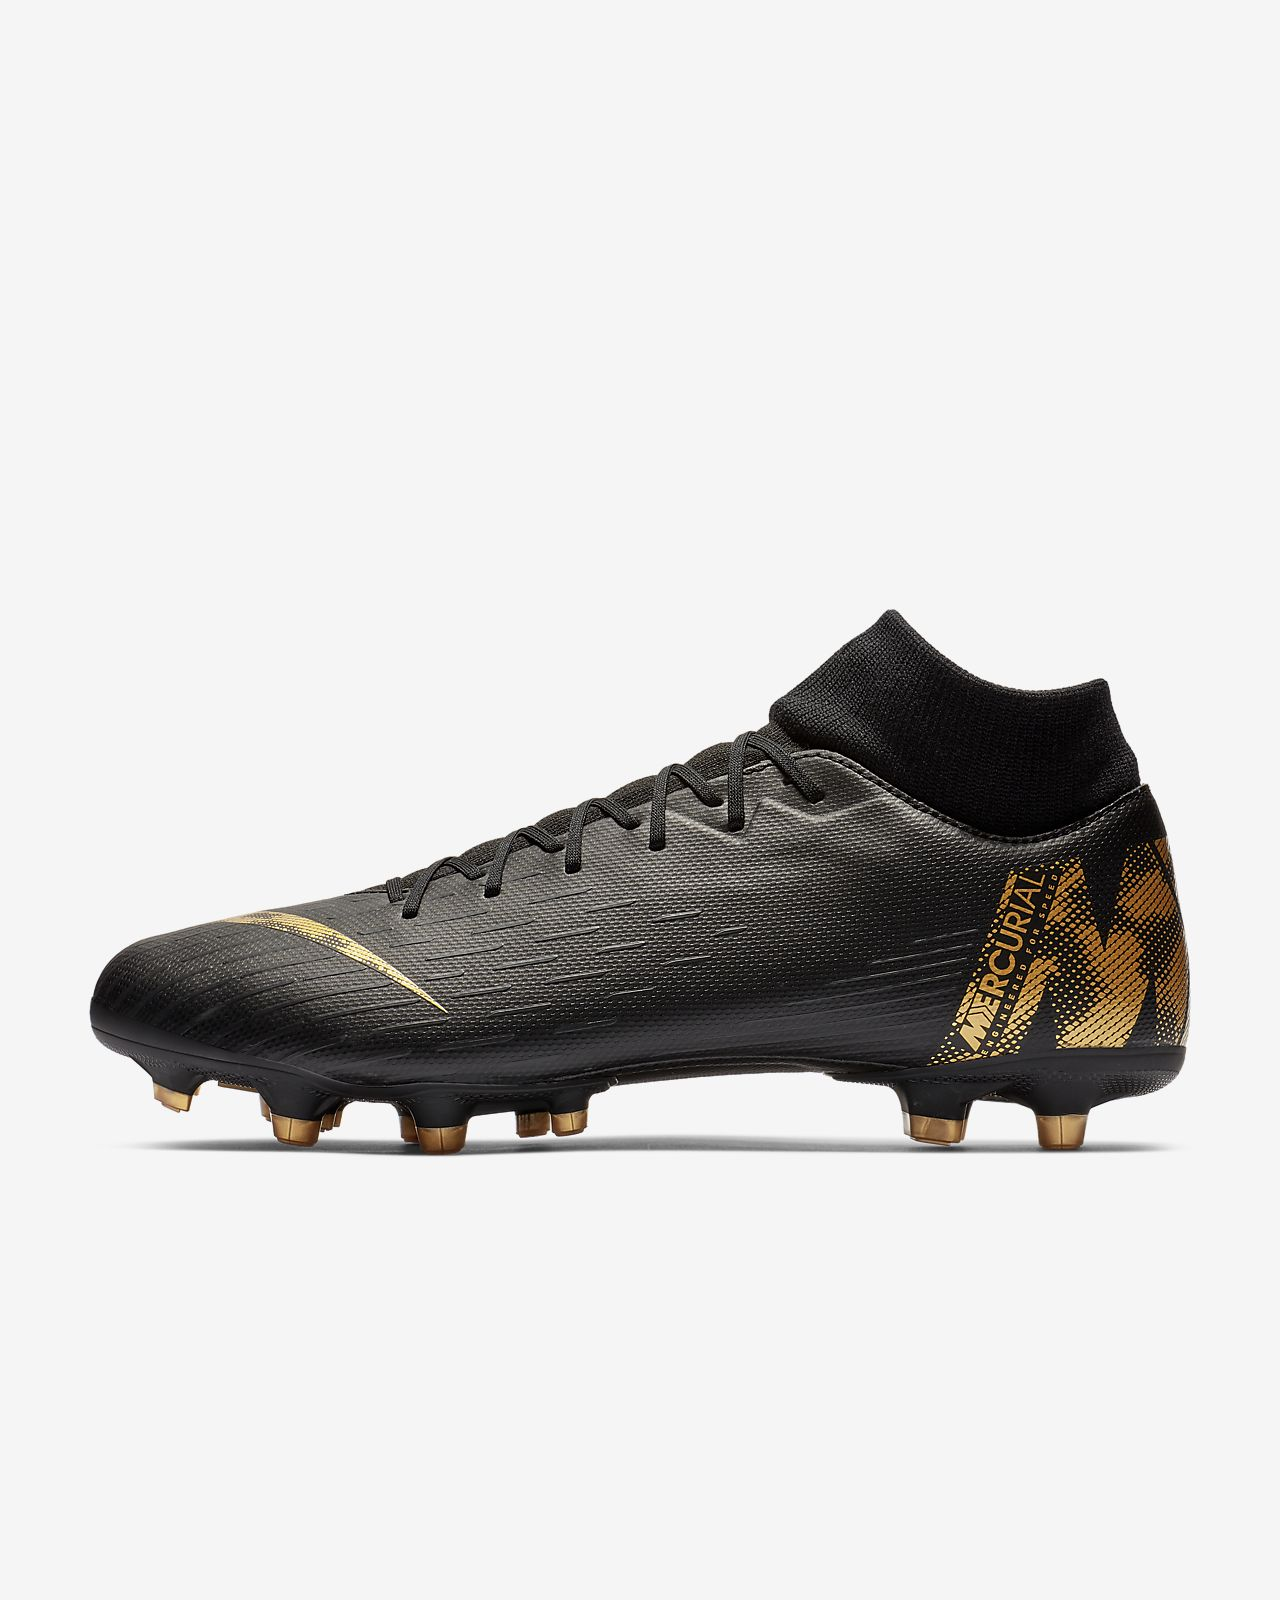 Nike Mercurial Superfly 6 Academy MG Multi-Ground Soccer Cleat. Nike.com 02a429f359f5